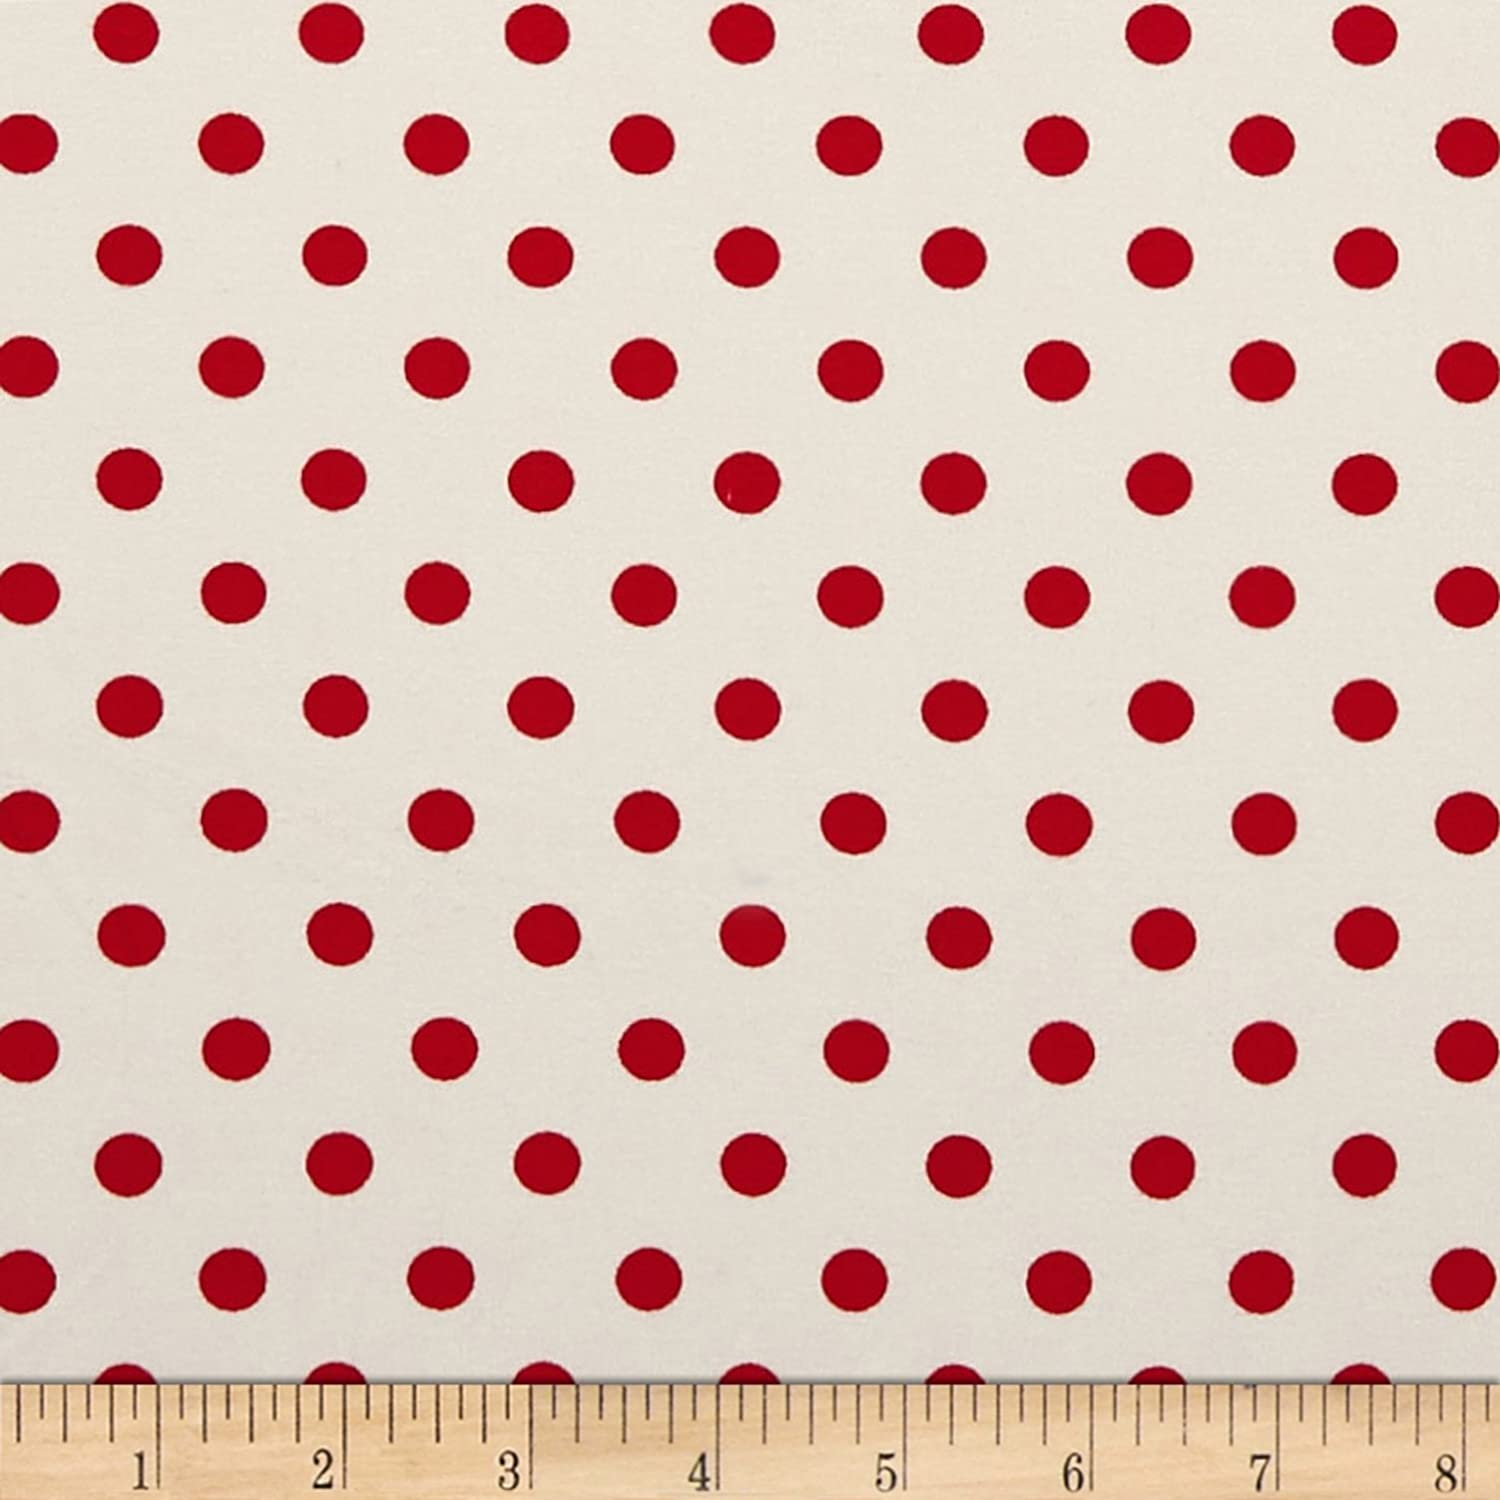 4849a808041 Amazon.com: Fabric Merchants Double Brushed Poly Jersey Knit Small Polka  Dot Red/Ivory Fabric by The Yard